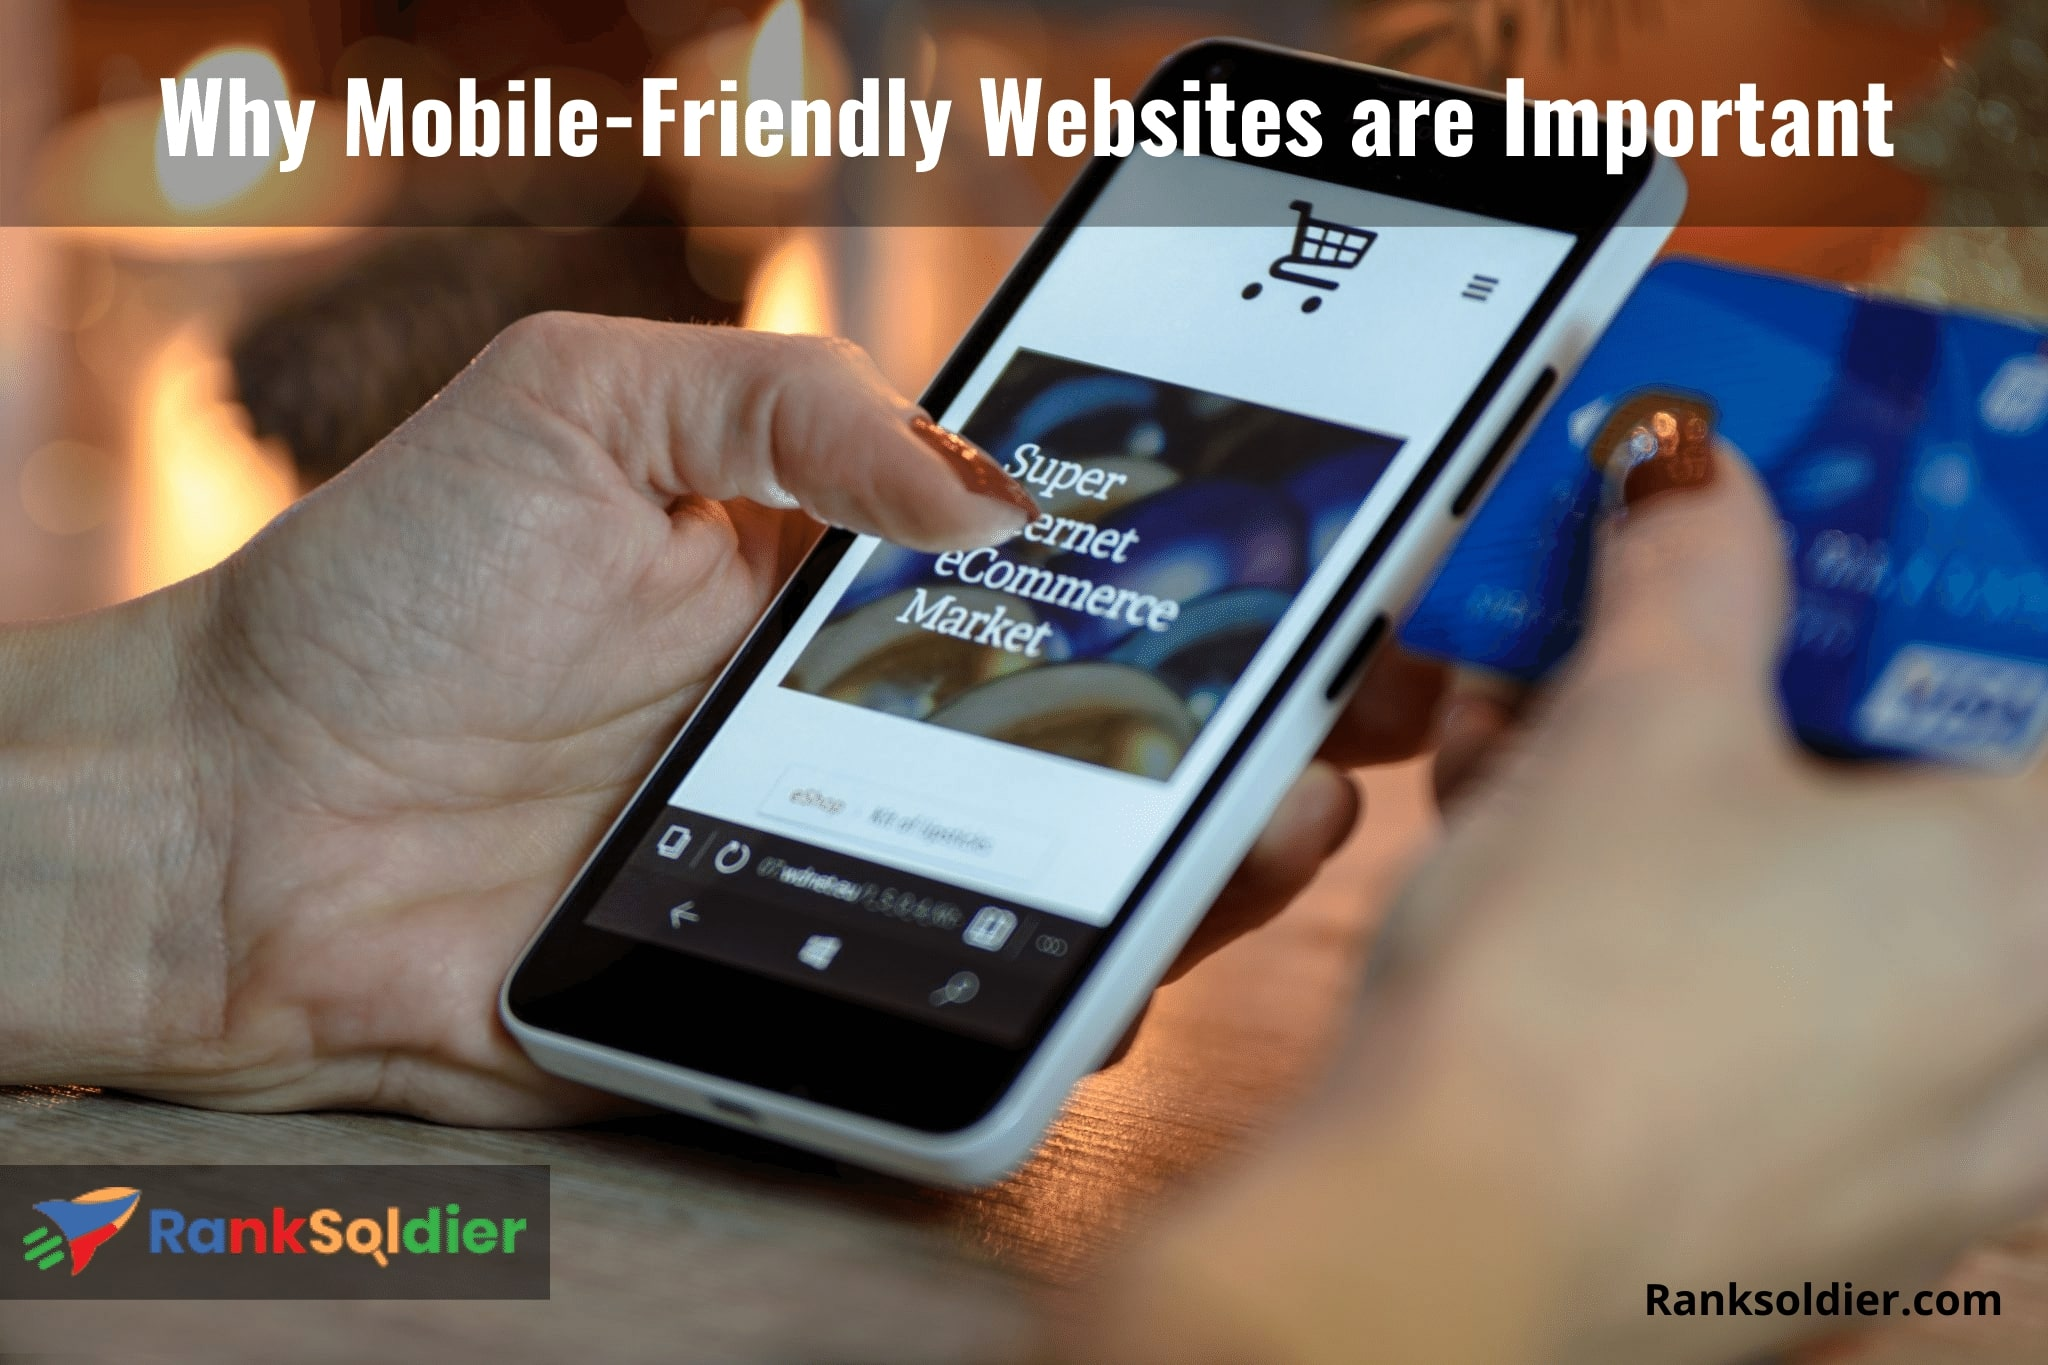 Why Mobile-Friendly Websites are Important